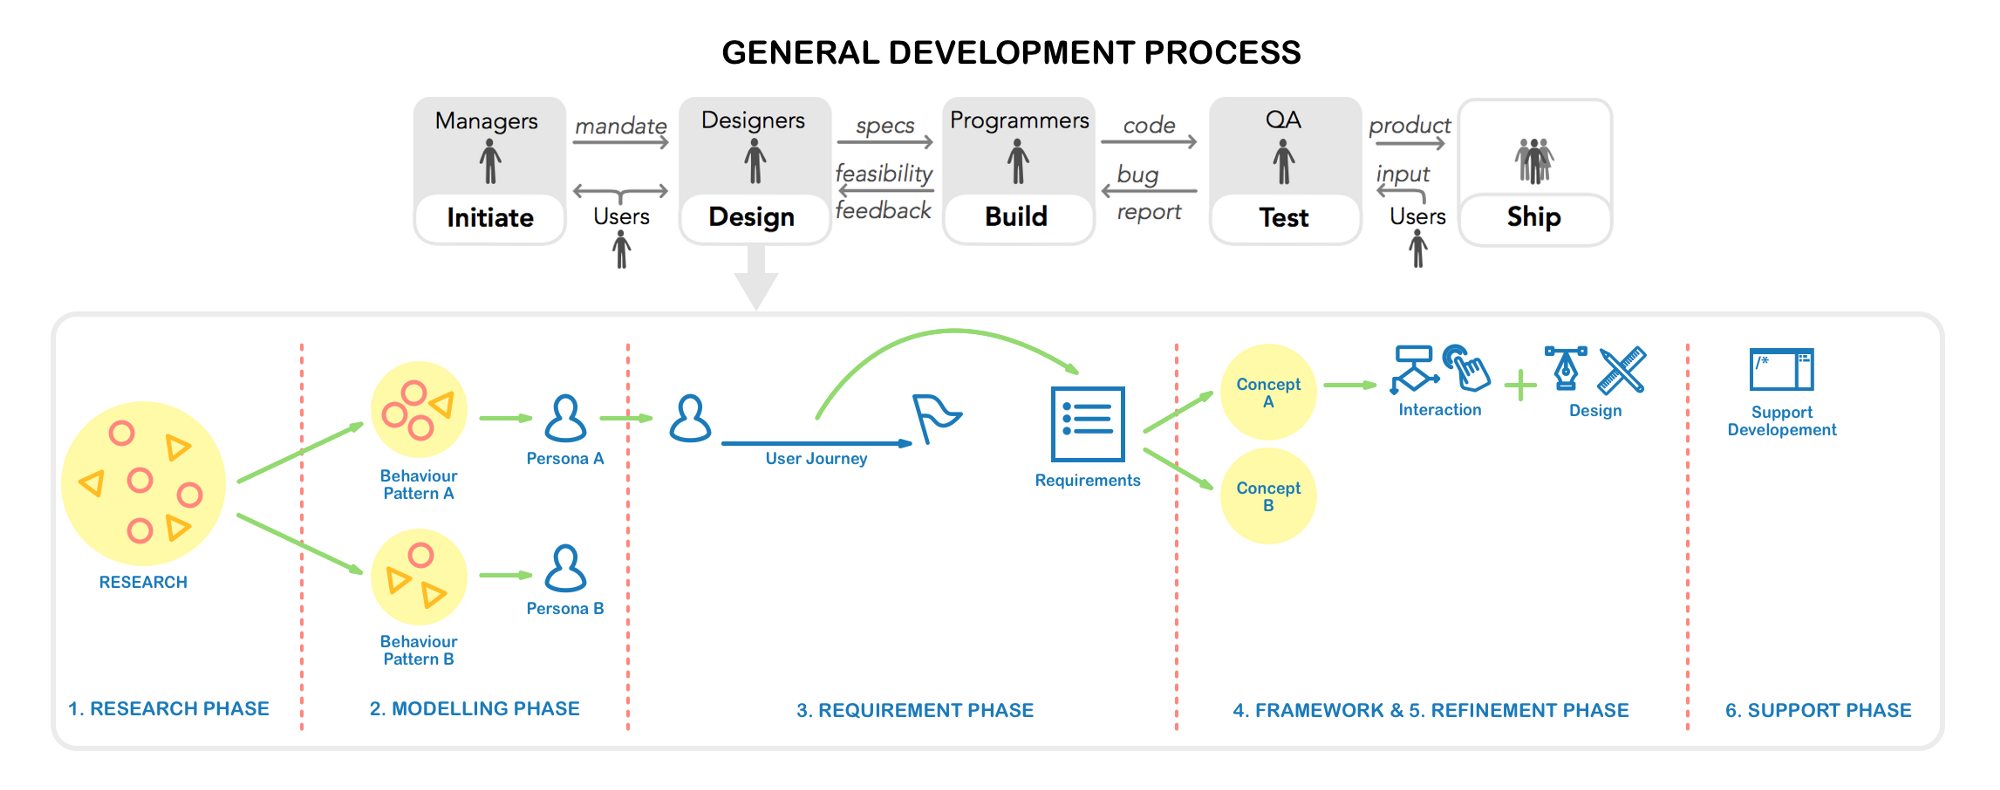 generic devolopment proces The drug development process: 9 steps from the laboratory to your medicine cabinet curious how drugs are really developed here's a simple explanation of the nine-step process from start to finish.